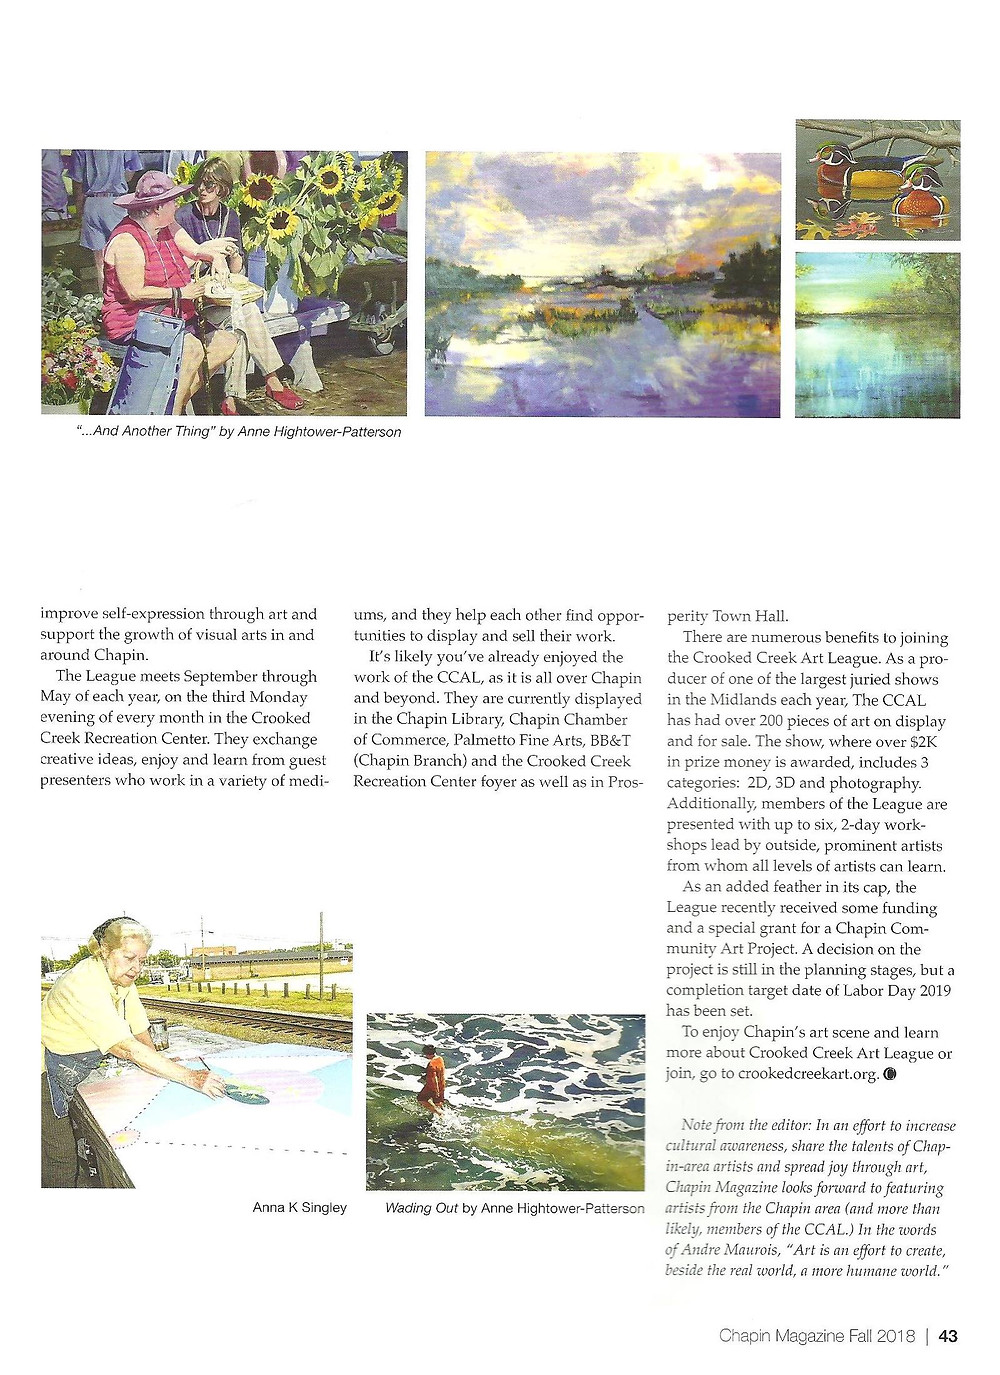 Article in Chapin Magazine - Page 1